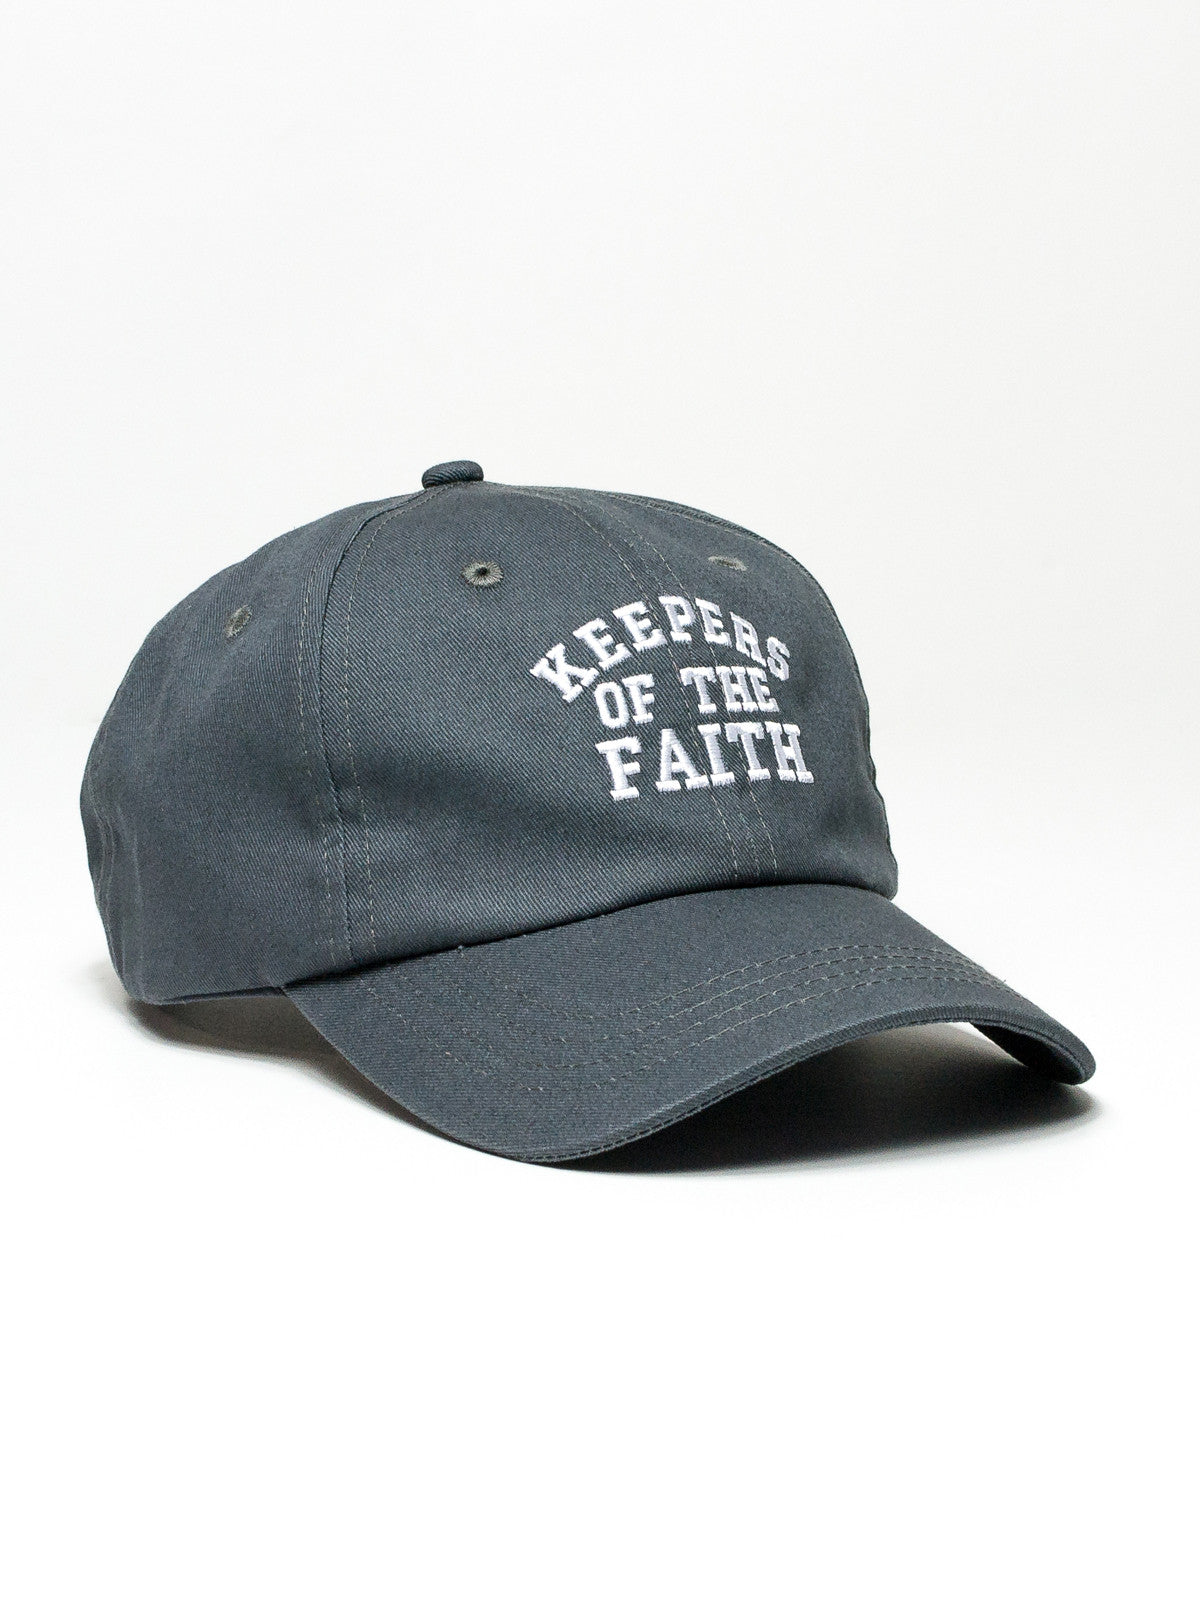 Terror - KOTF Dad Hat - MerchLimited - 1